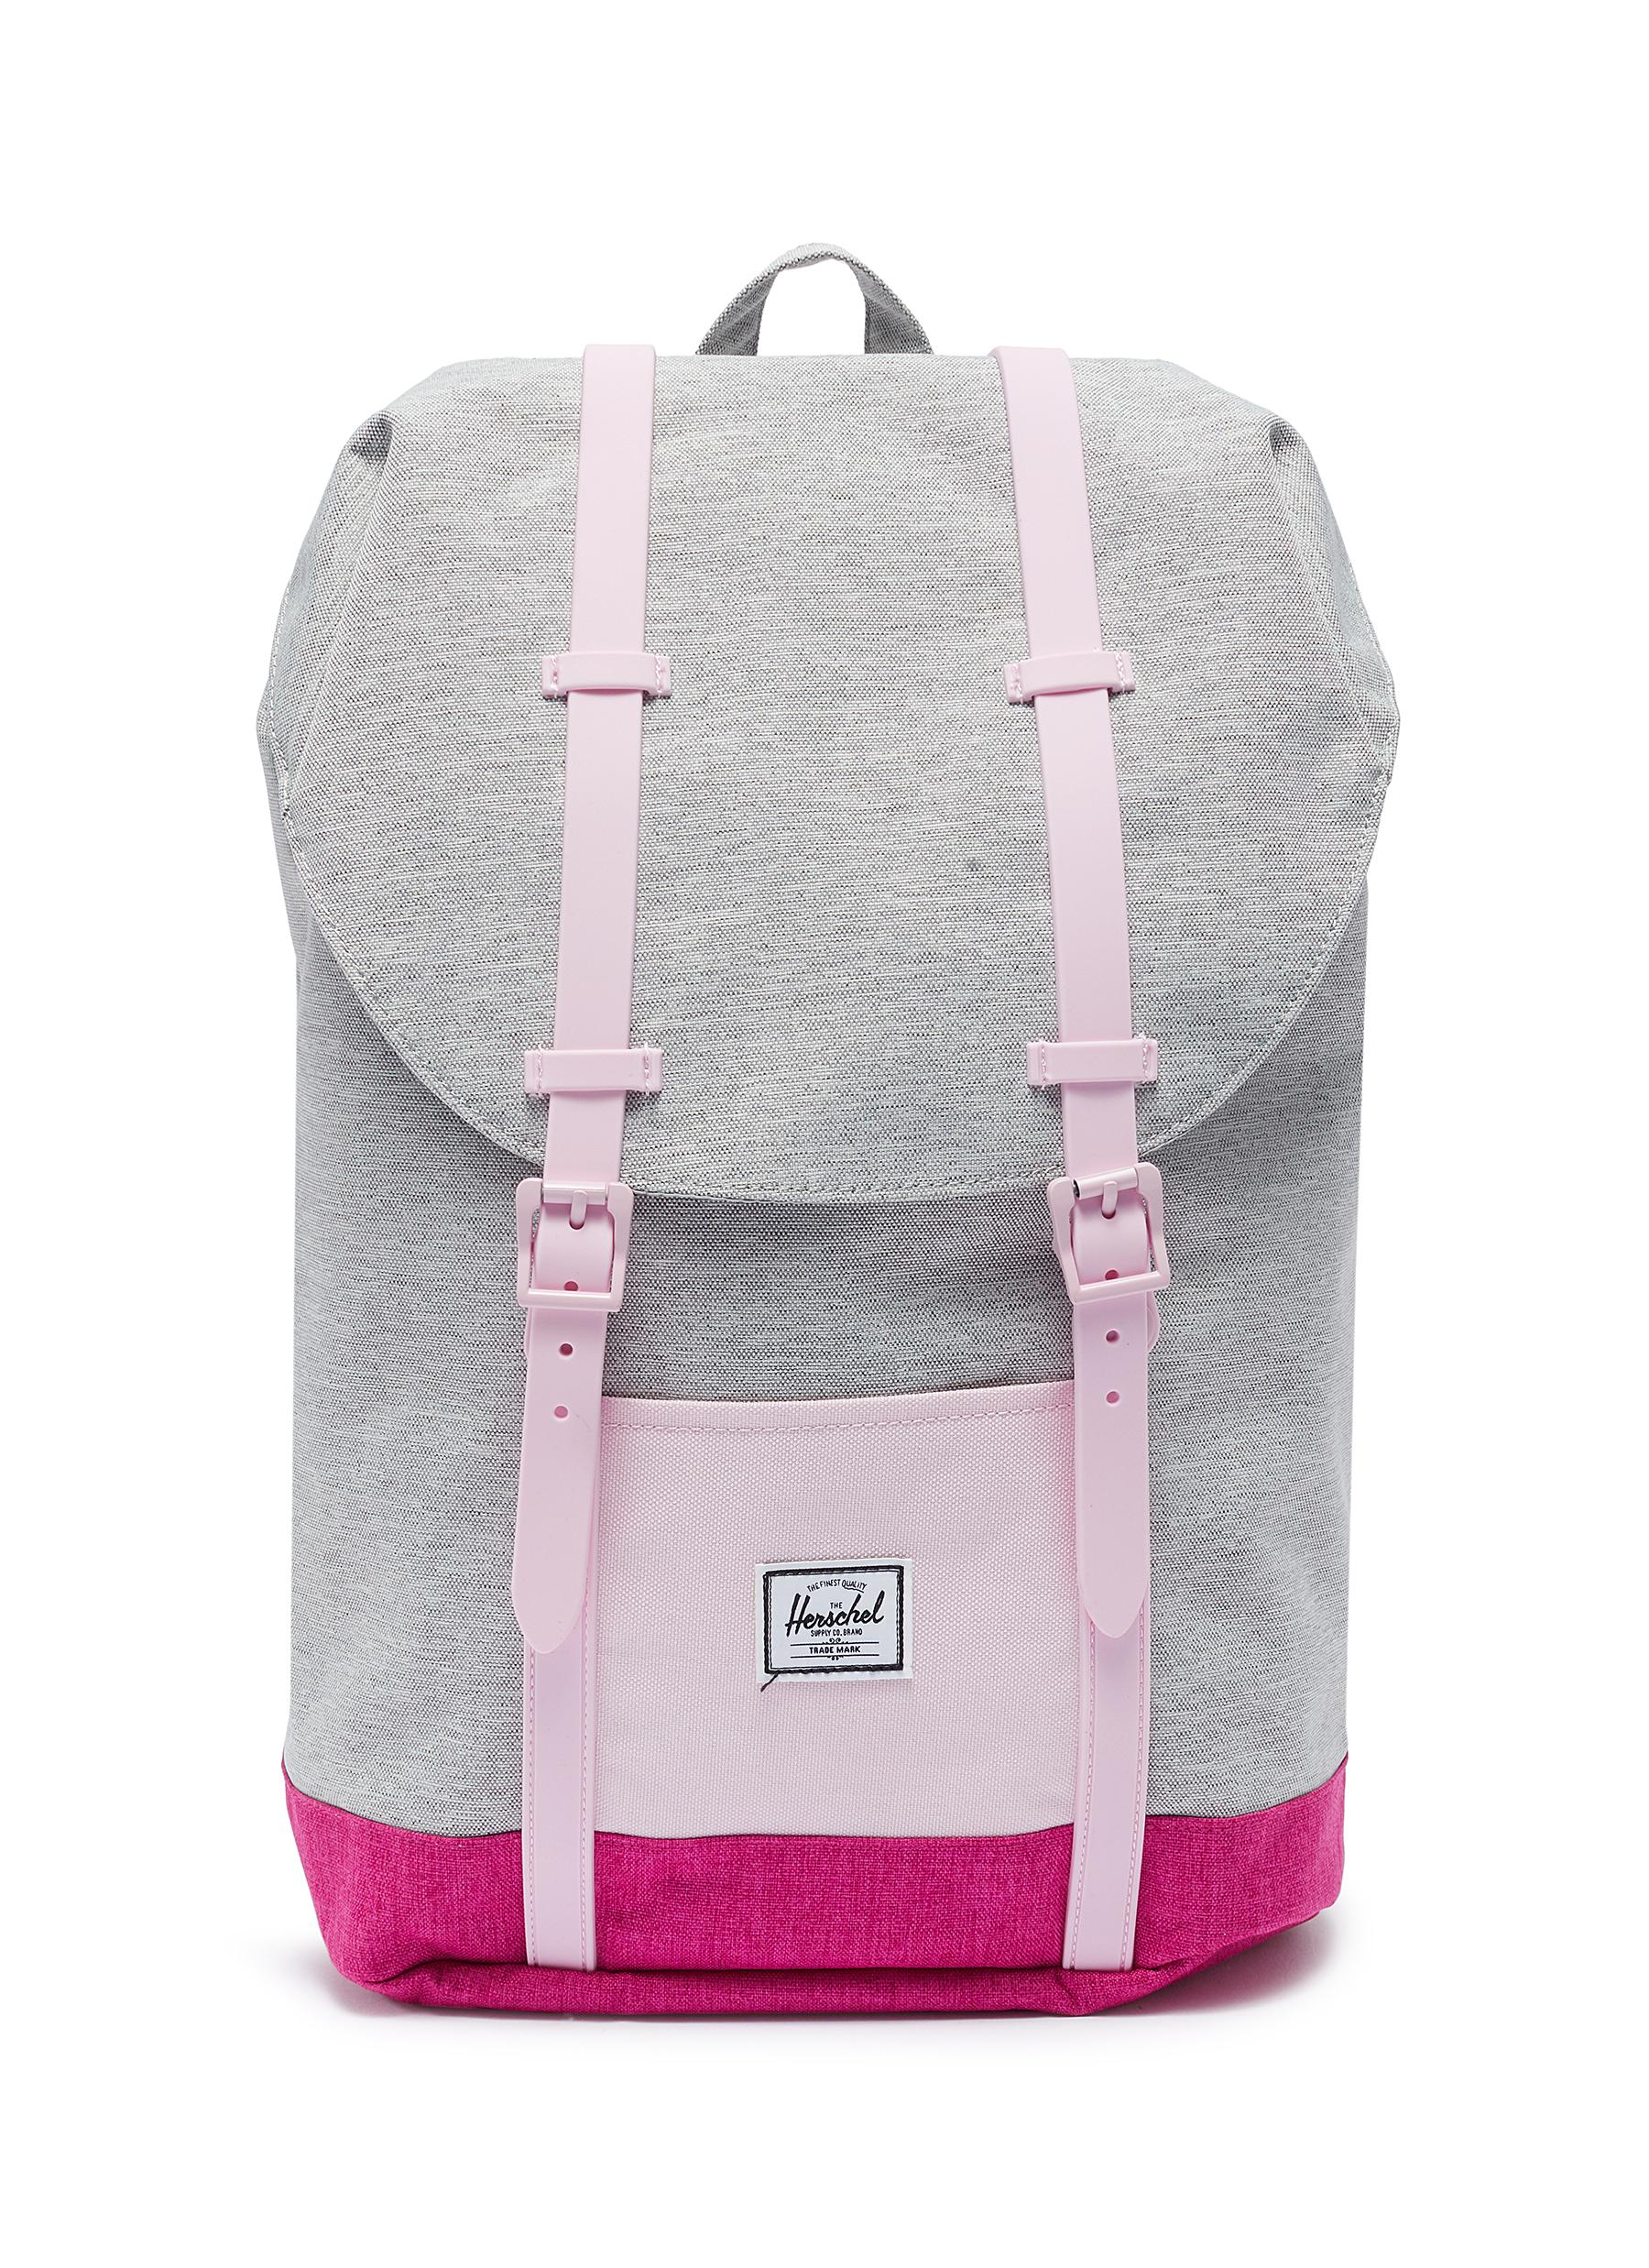 5b227875ea2c The Herschel Supply Co. Brand.  Retreat  colourblock canvas 14L youth  backpack